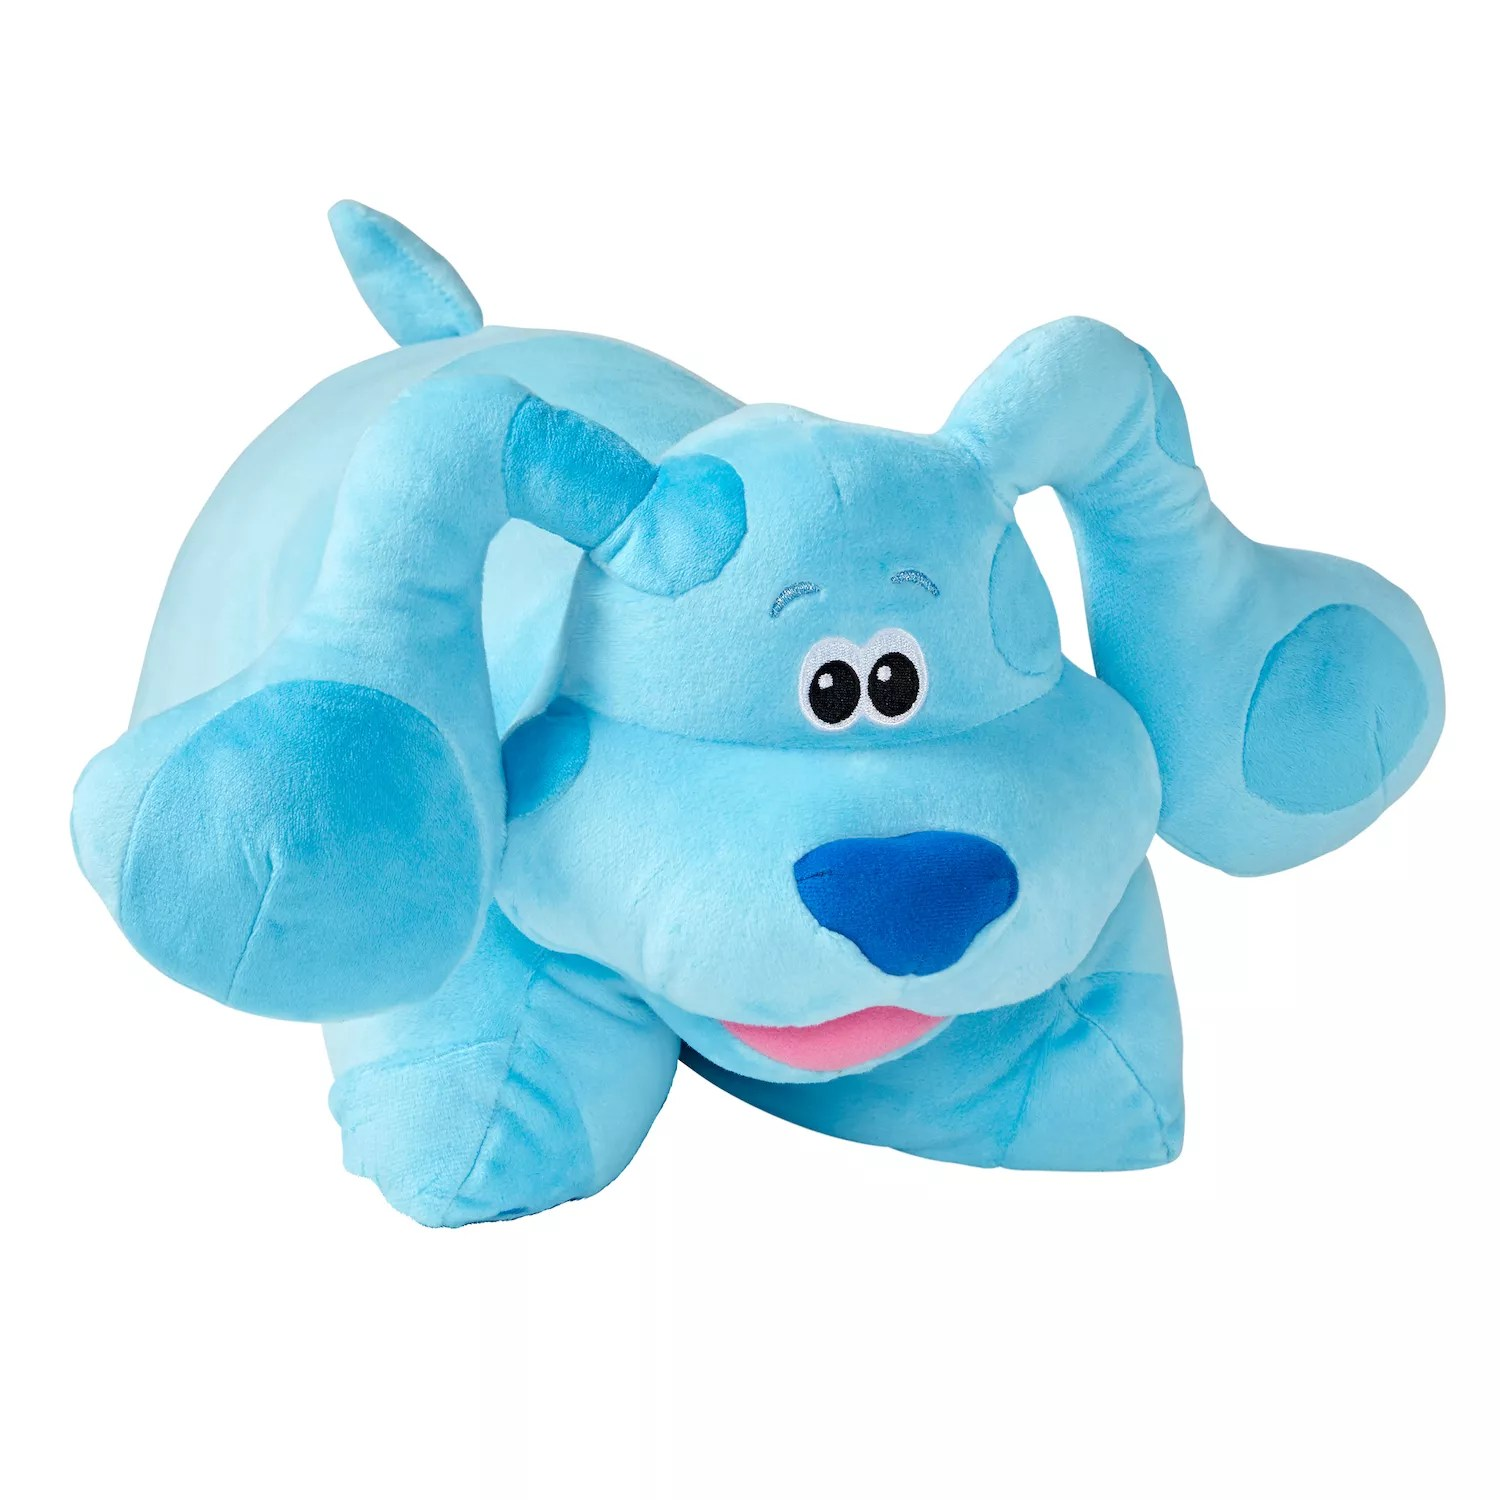 the child plush toy by pillow pets